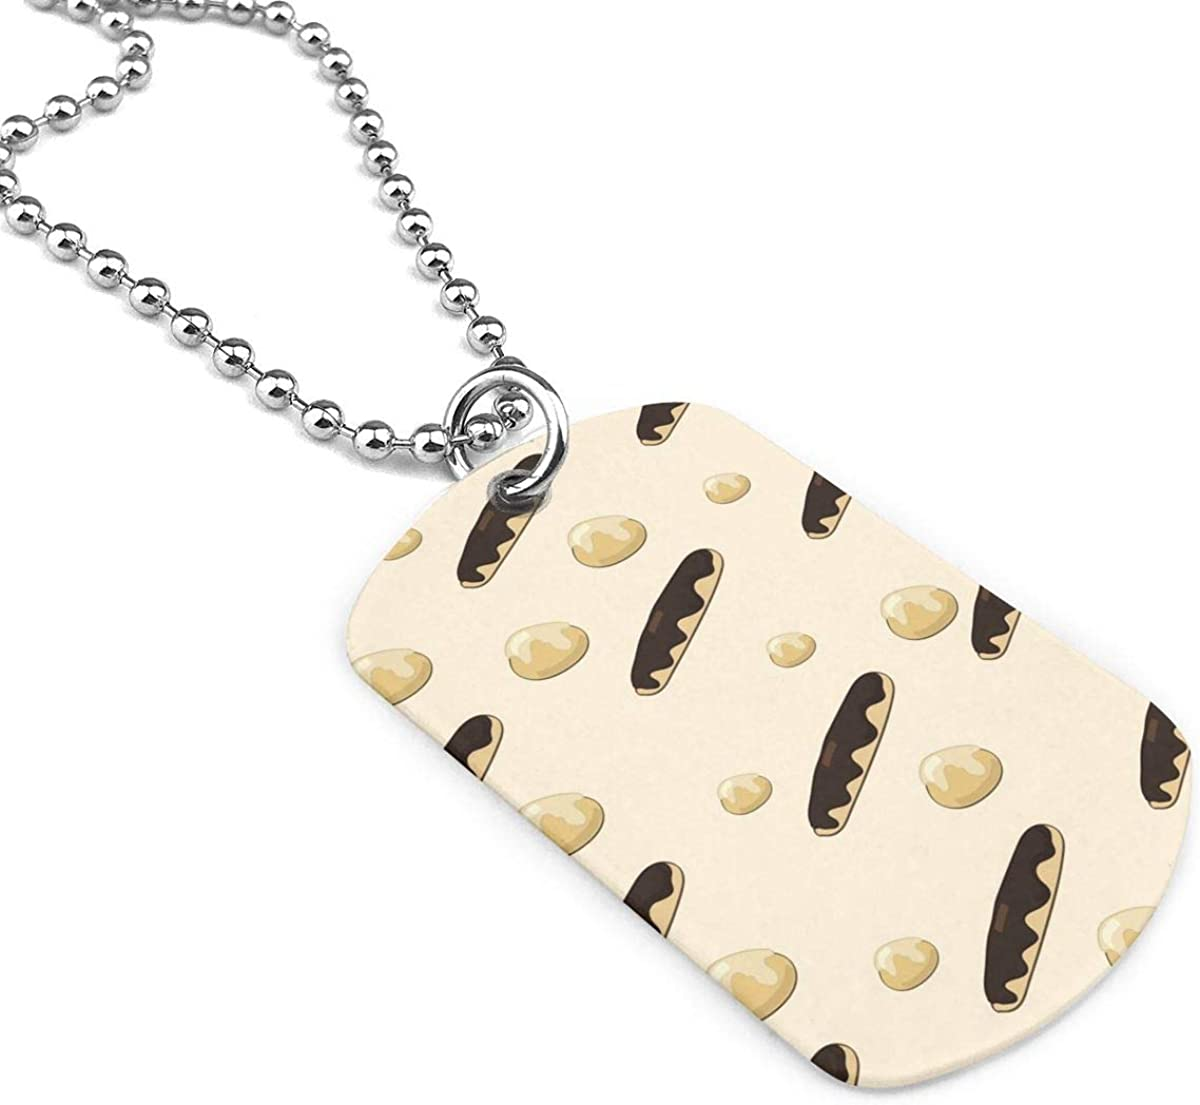 Pattern With Guitars Jewelry Military Pendant Brand Necklace Metal Dog Tag